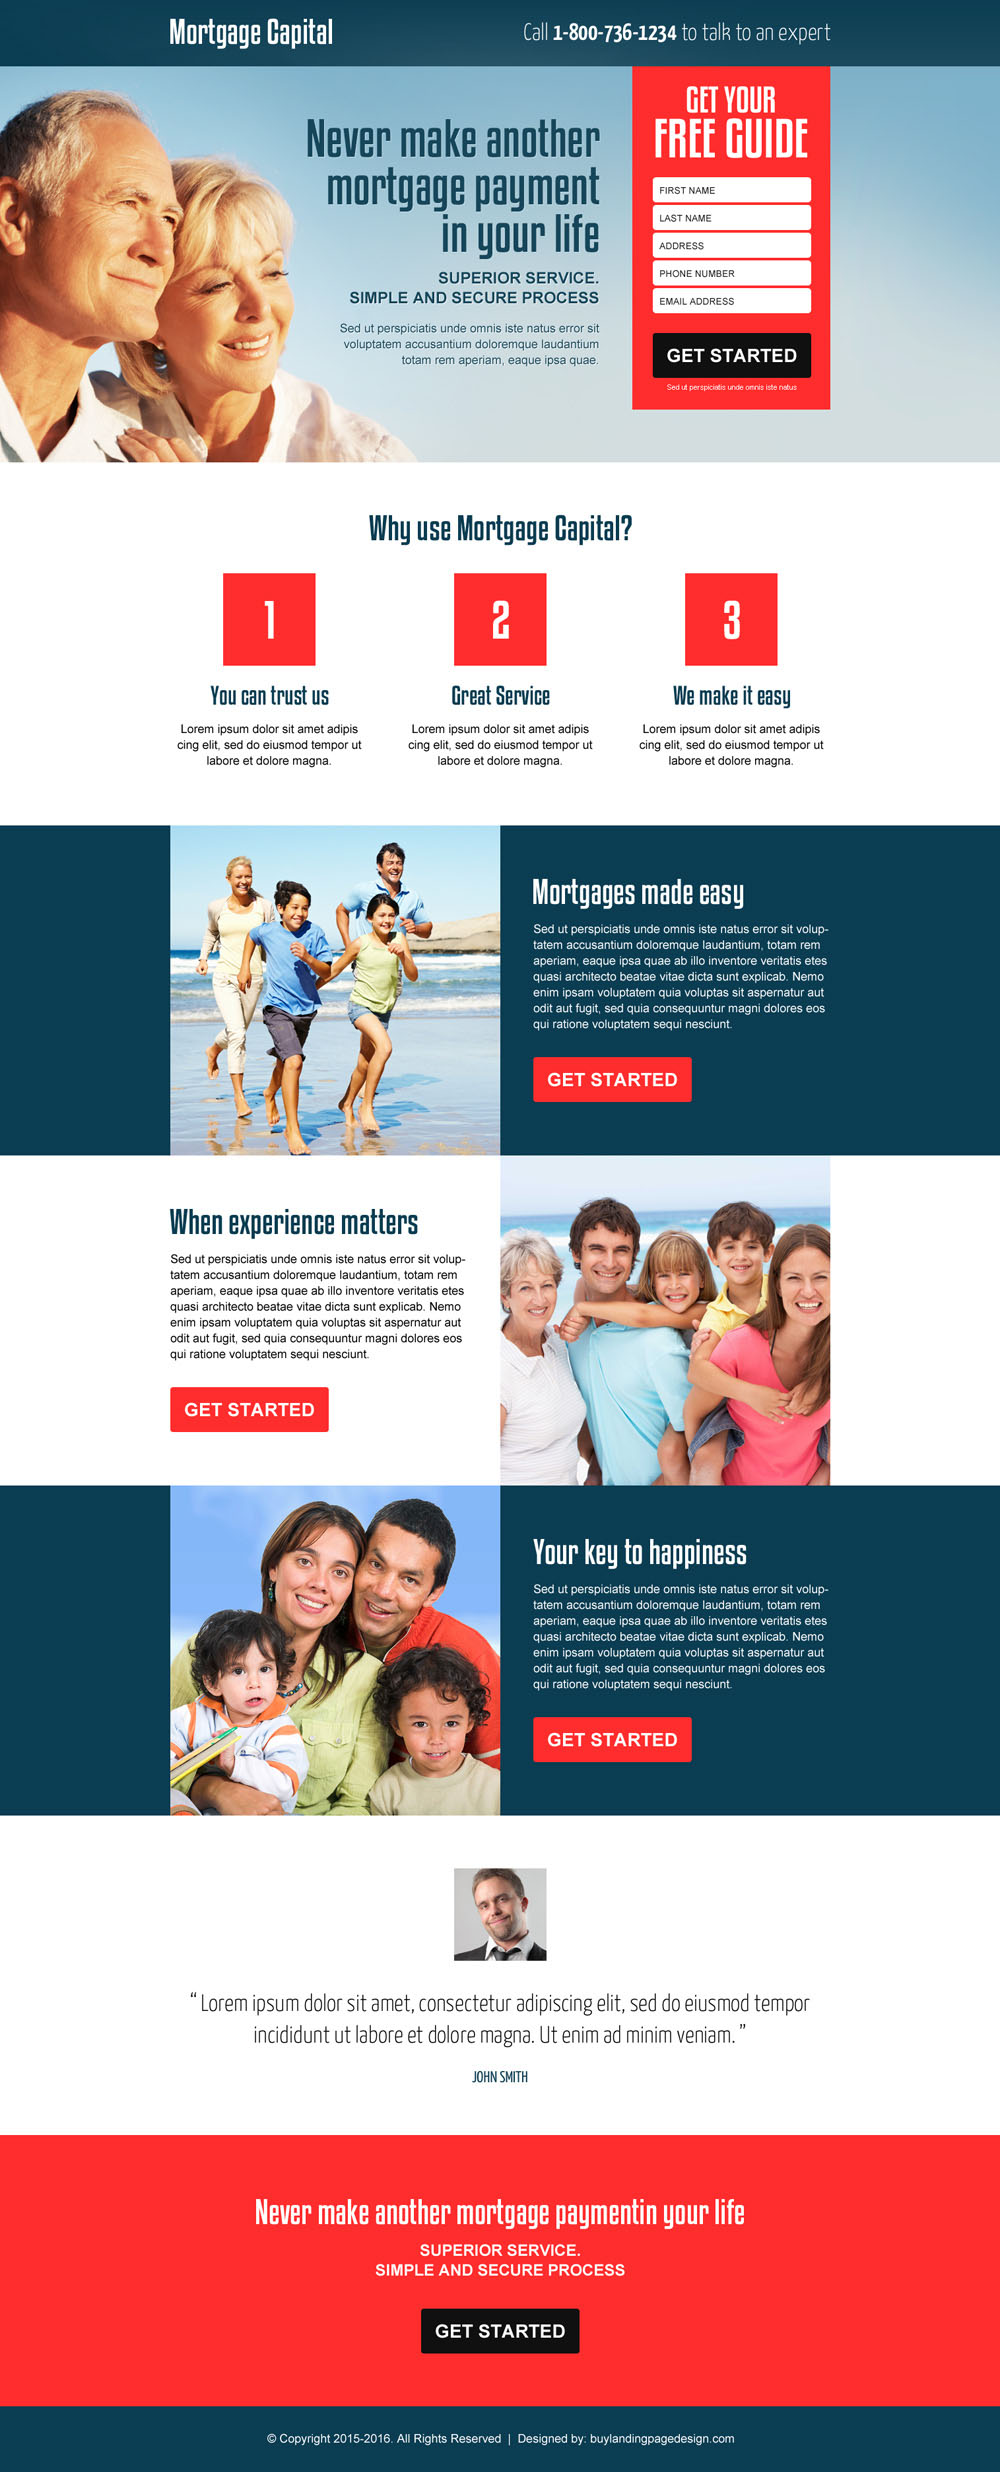 best-mortgage-business-service-free-quote-lead-generation-converting-responsive-landing-page-design-003